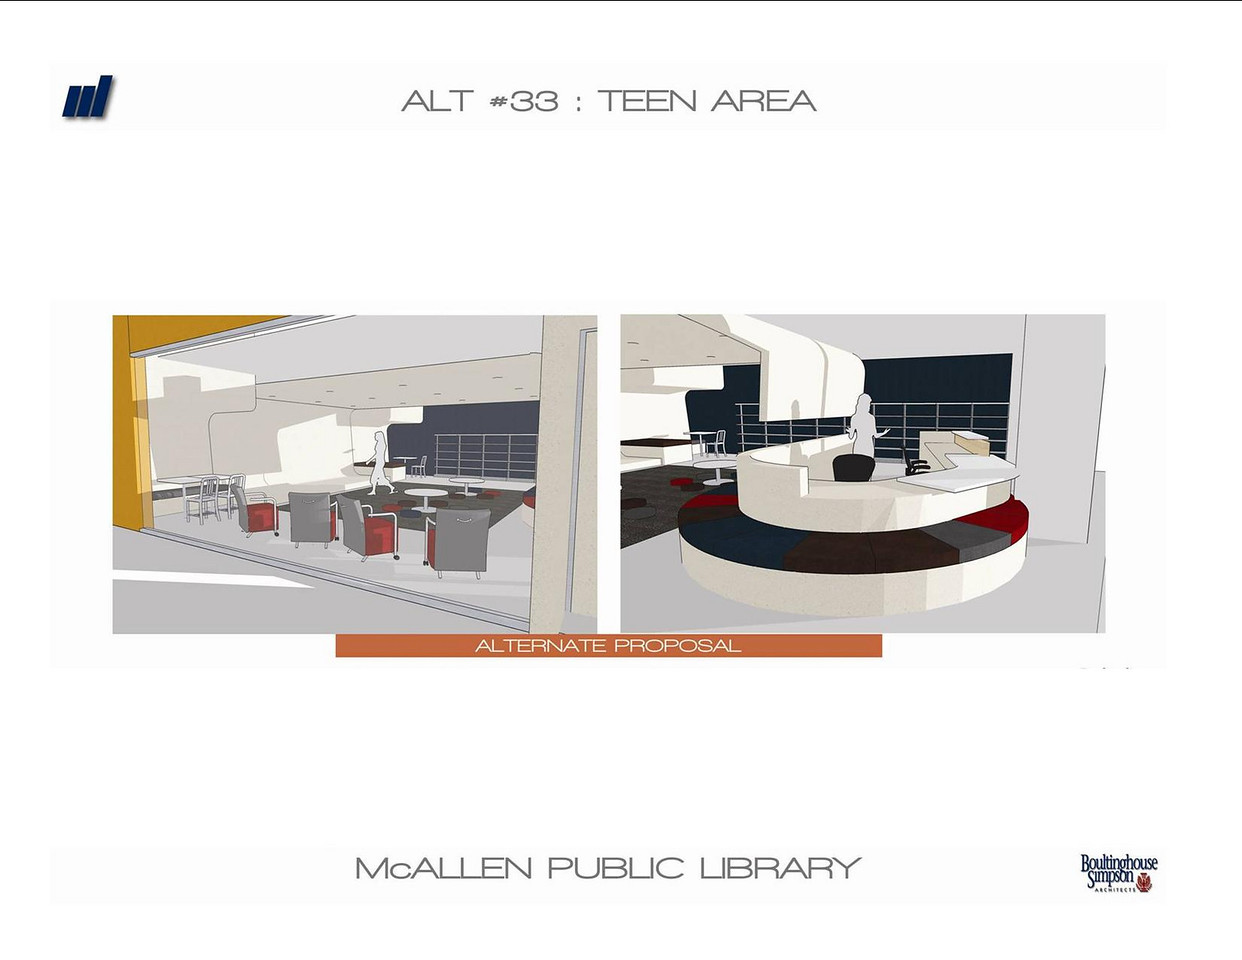 Interior view of the new Main Library's teen area.